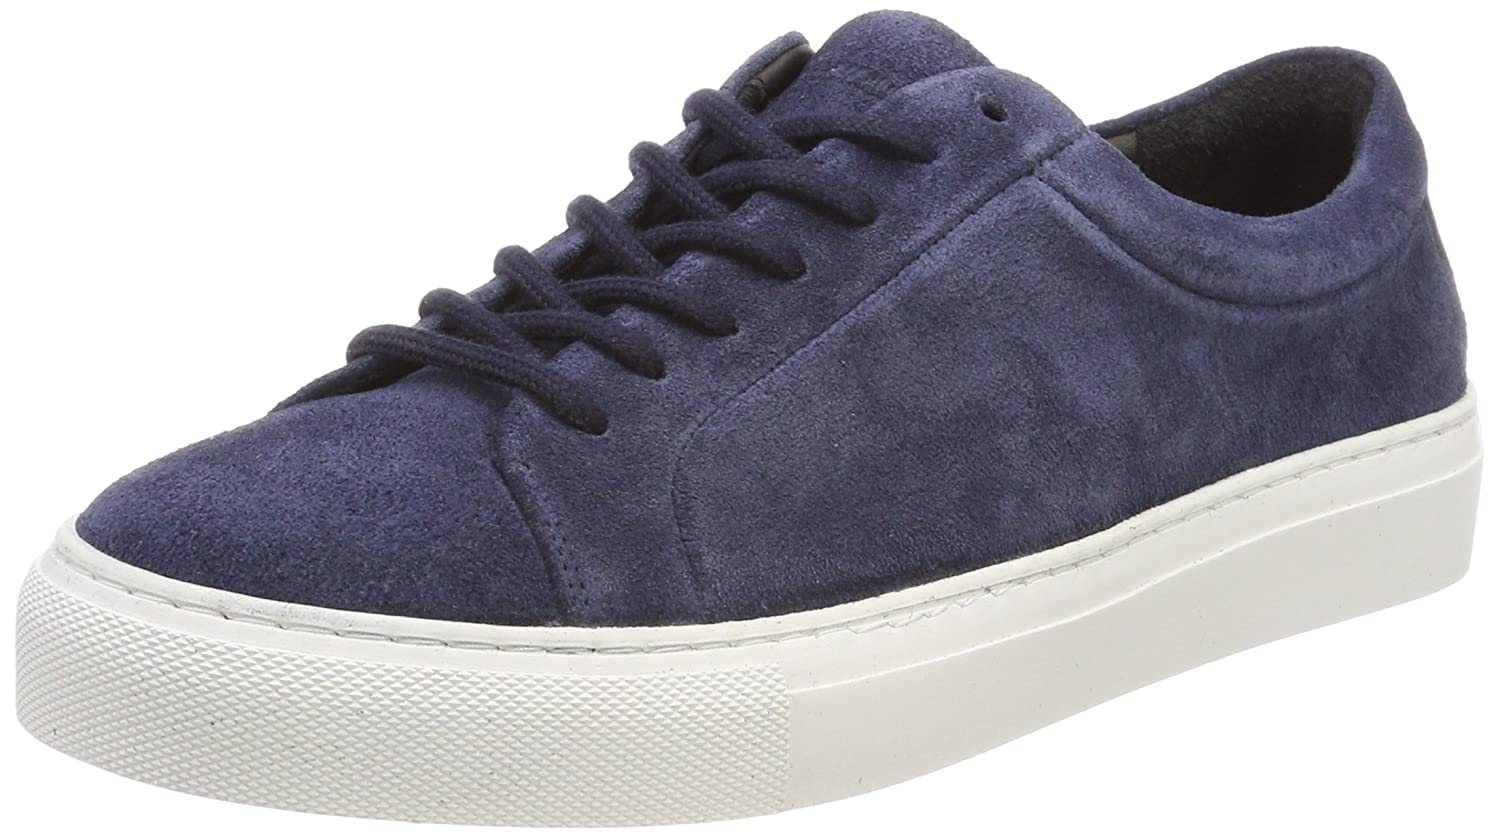 Royal RepubliQ Elpique Suede Shoe, Baskets Femme, Clair, 40 EU